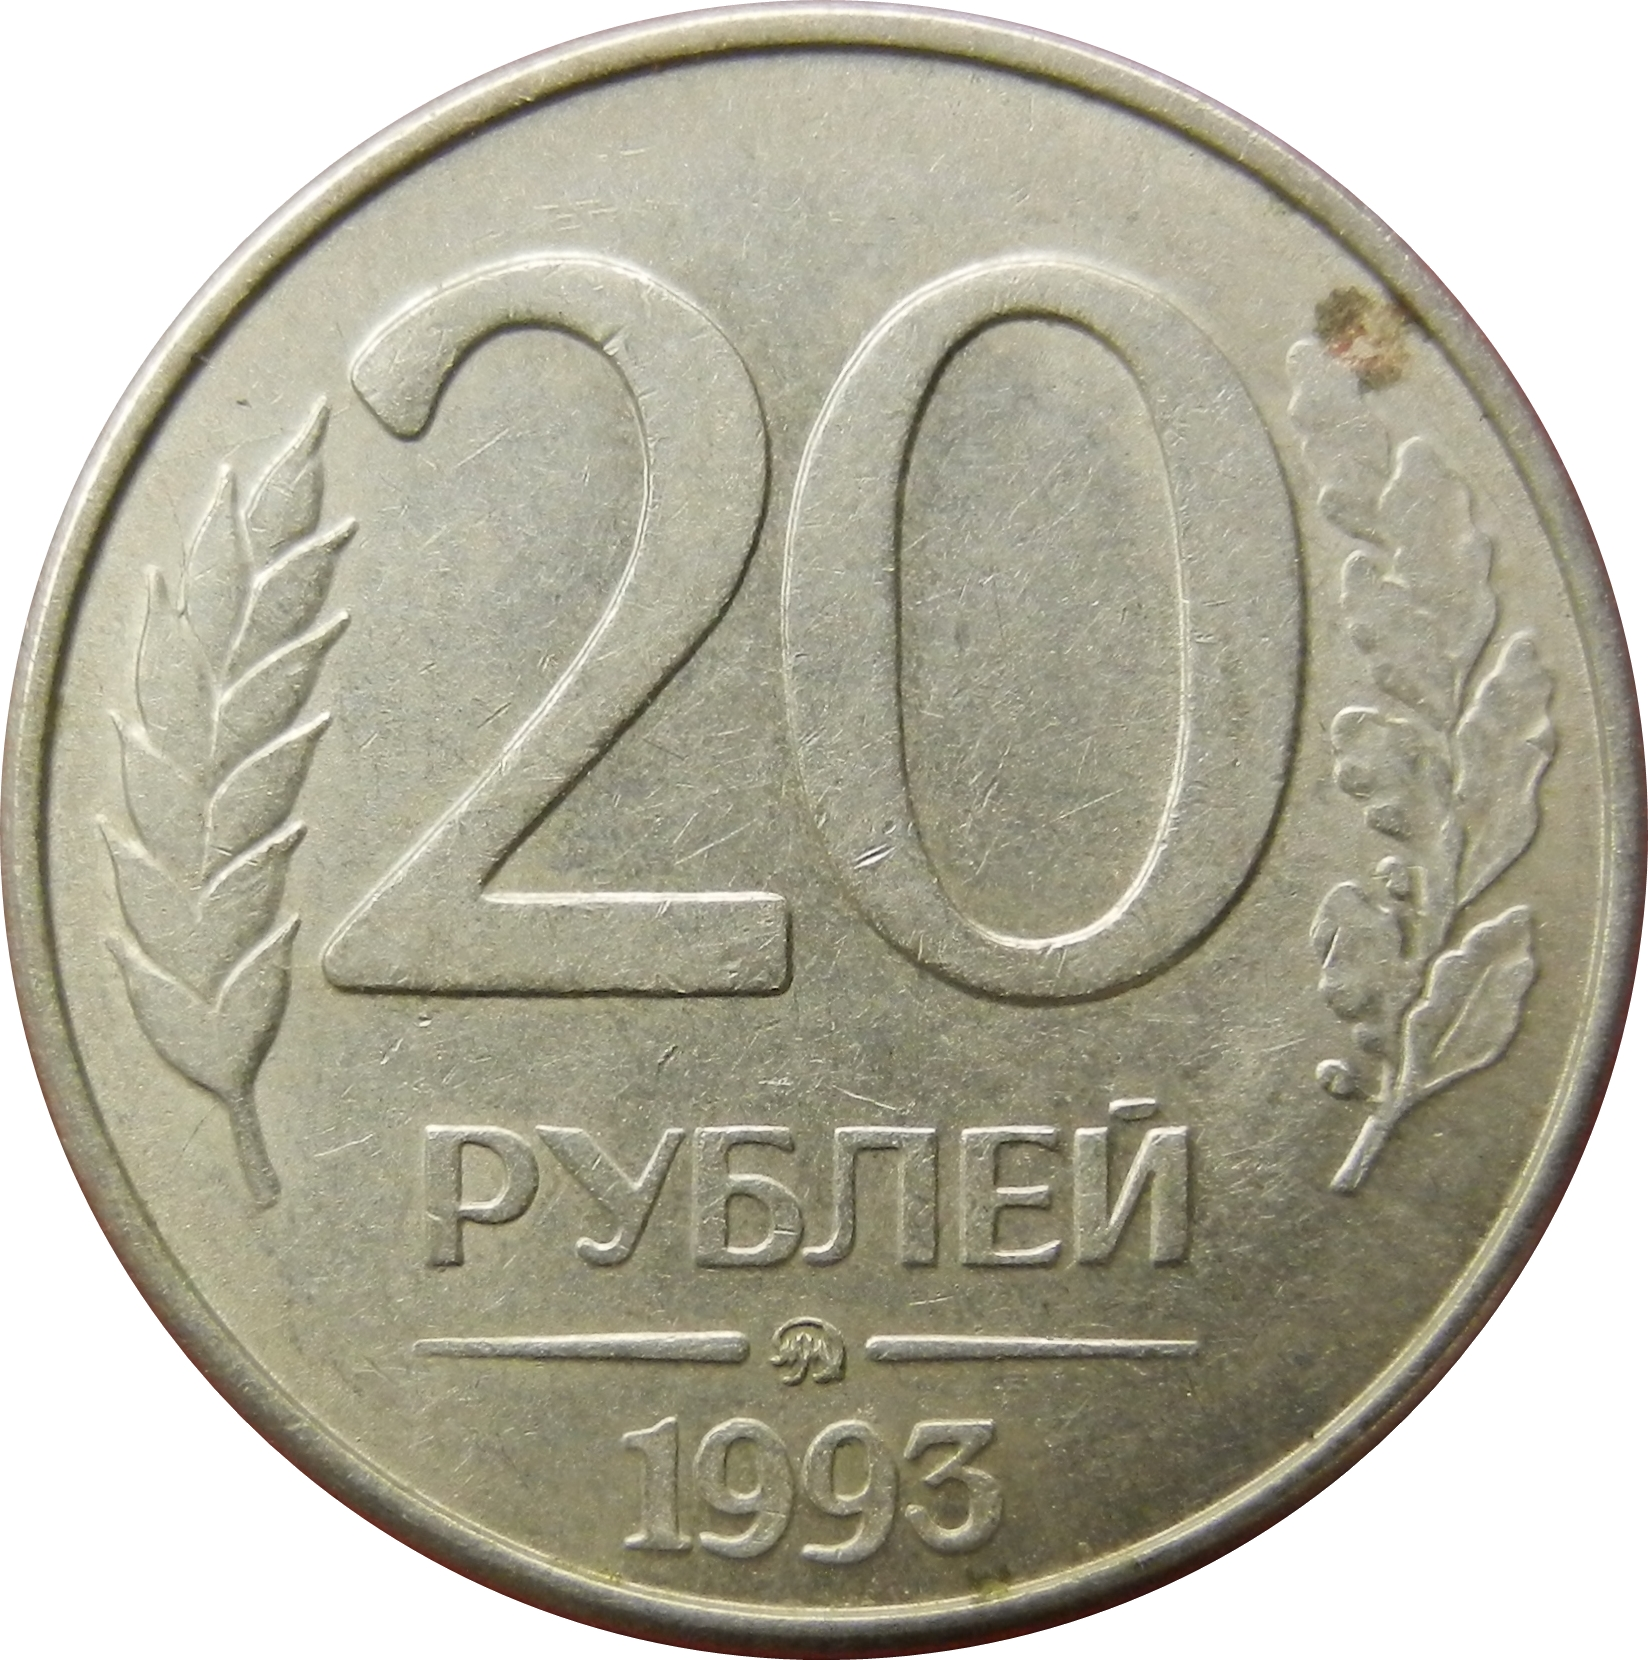 20 Roubles Copper-Nickel Coin Russia 1992 L Double-headed eagle